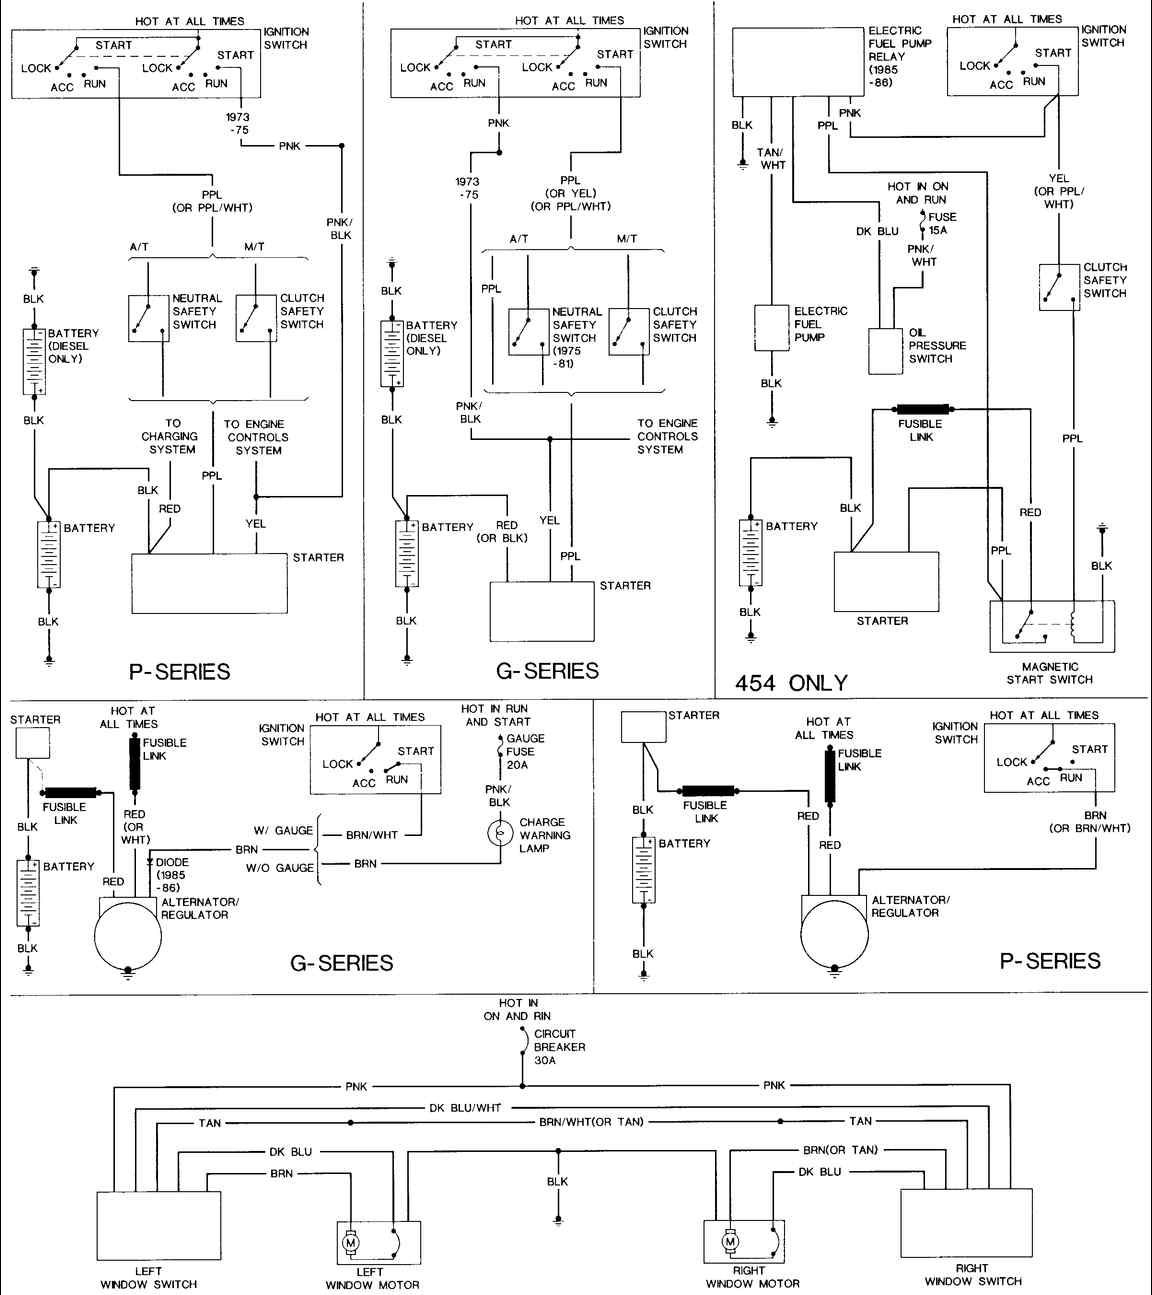 0c73623a181dc376dbb4777e2029d285 free chevy truck wiring diagrams gmc truck wiring diagrams free 93 chevy truck wiring diagram at bayanpartner.co